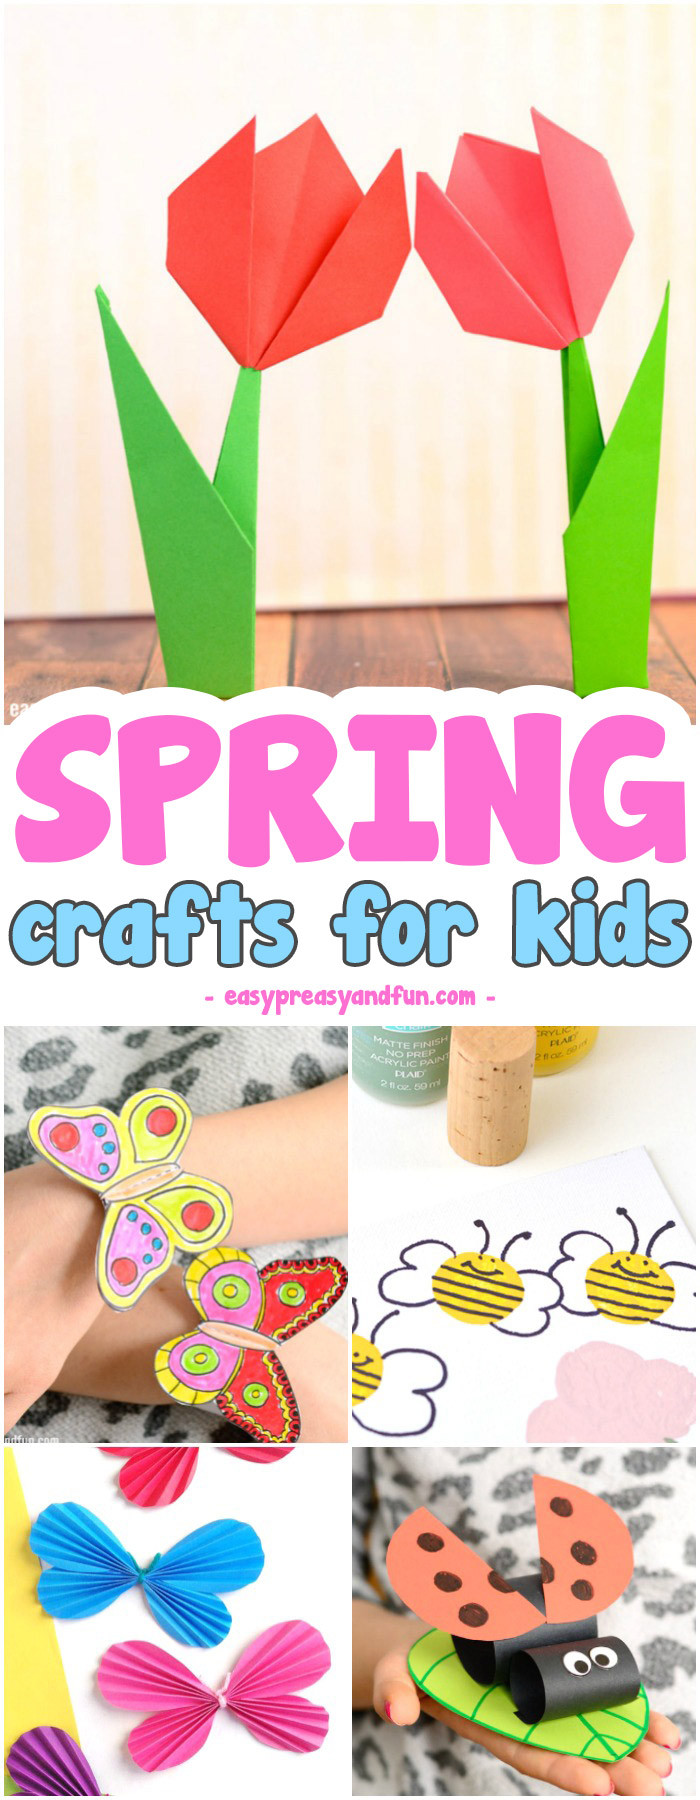 Best ideas about Free Kids Crafts . Save or Pin Spring Crafts for Kids Art and Craft Project Ideas for Now.